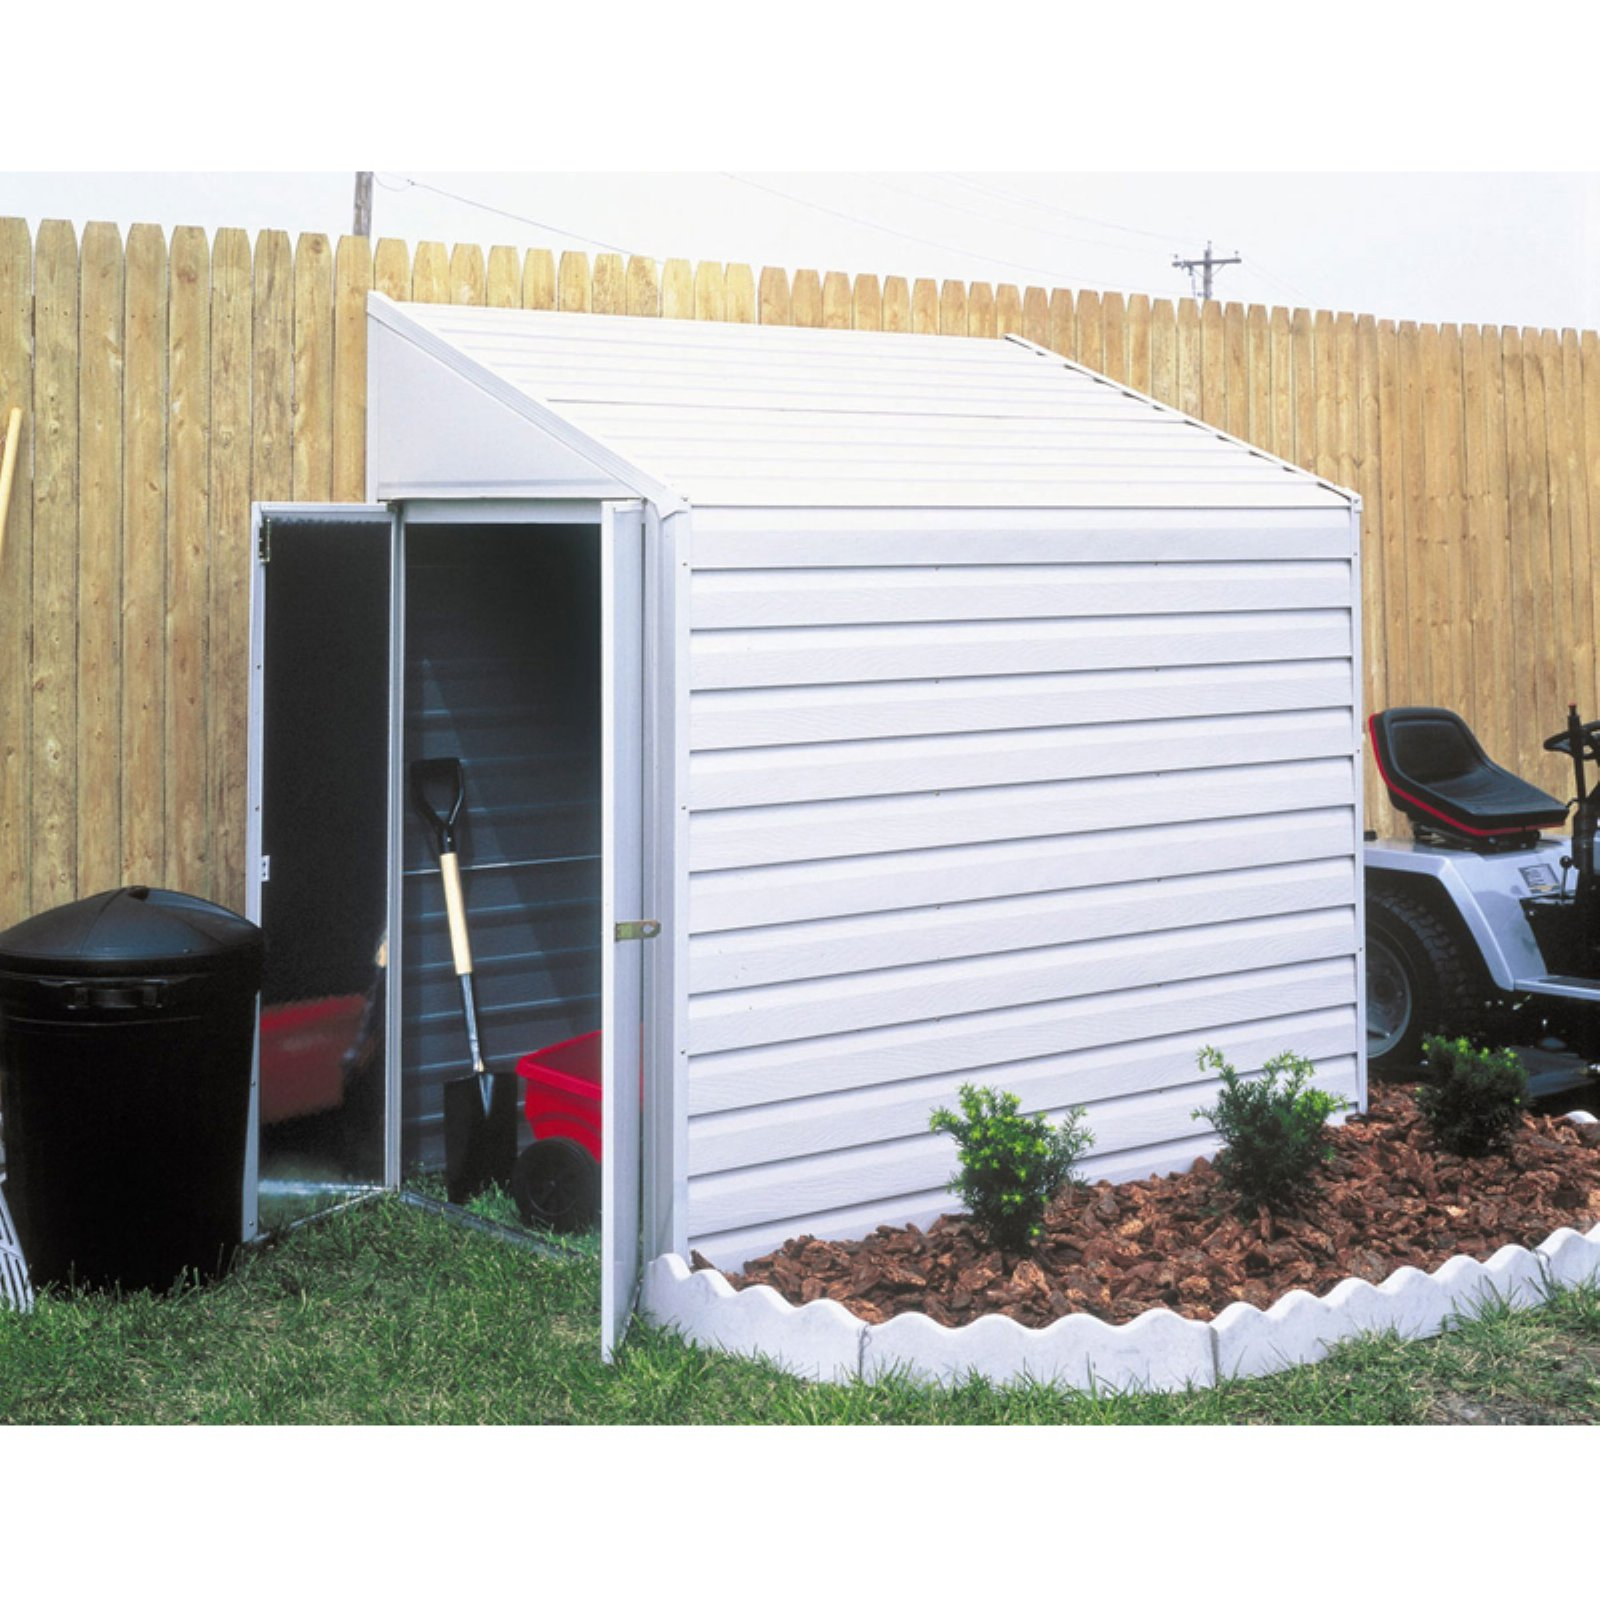 Yardsaver 4 x 10 ft. Steel Storage Shed Pent Roof Eggshell